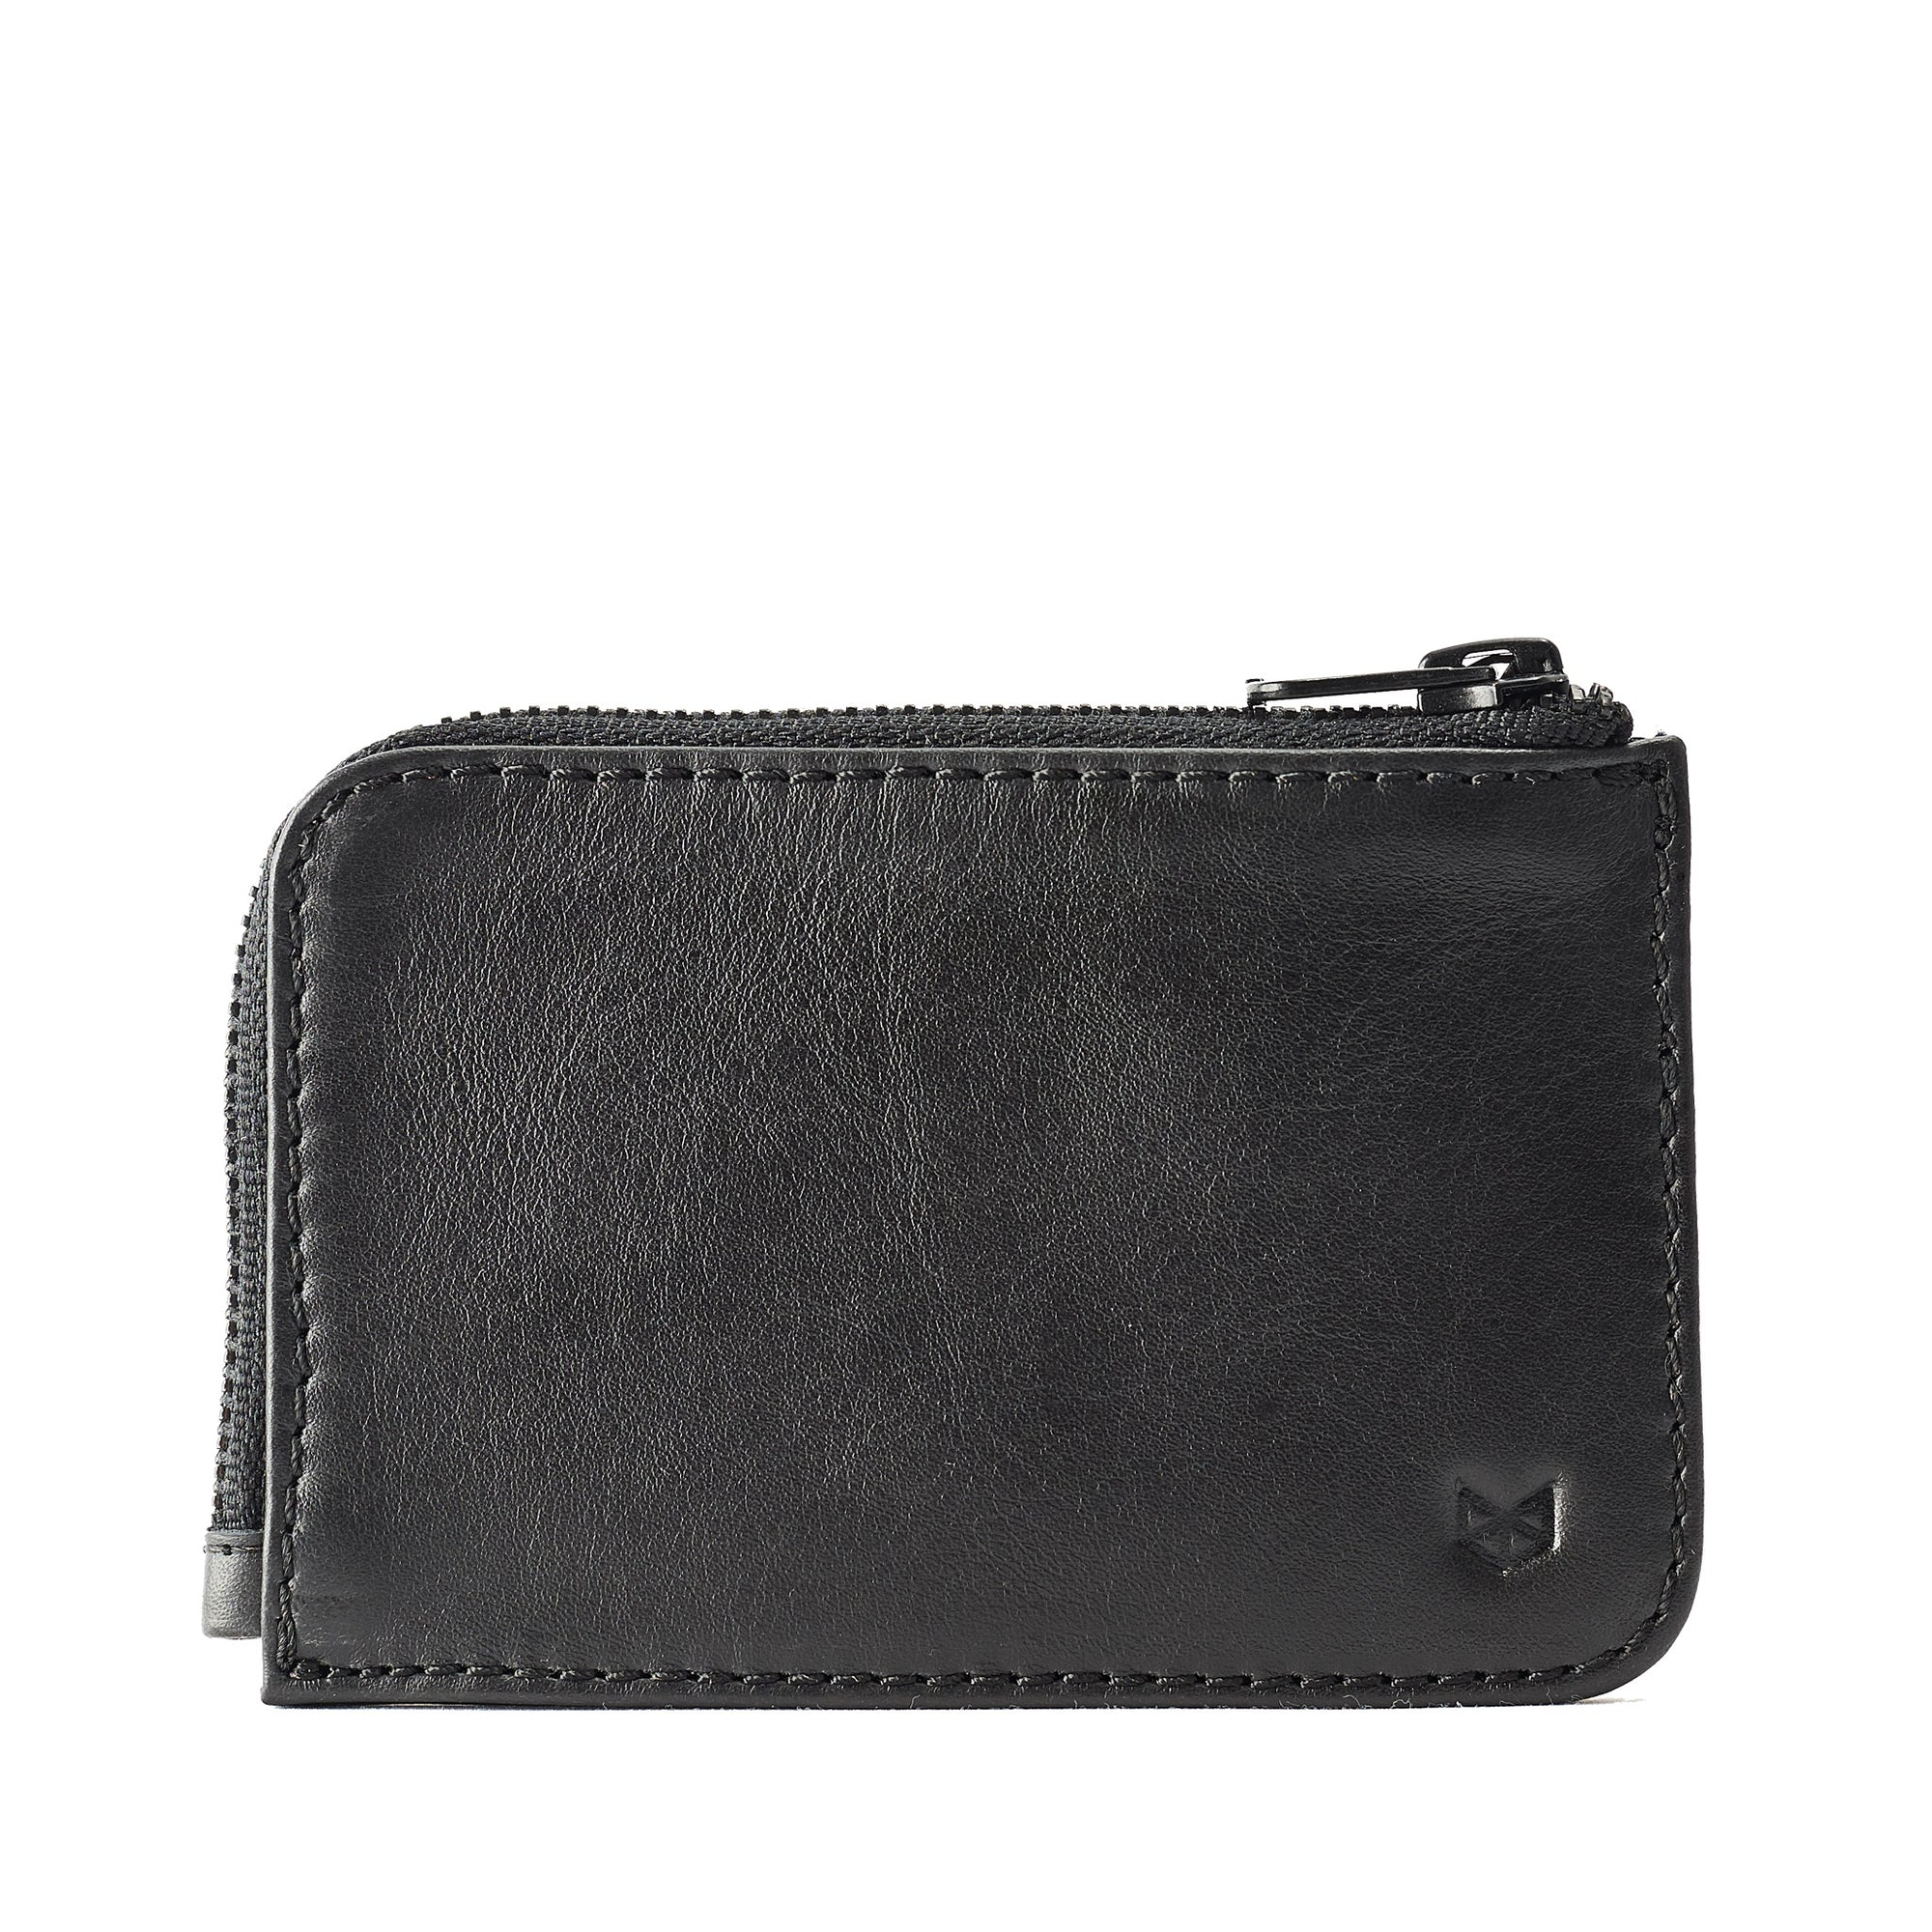 HANDMADE LEATHER ZIP CARD HOLDER // BLACK by Capra leather - Capra ...